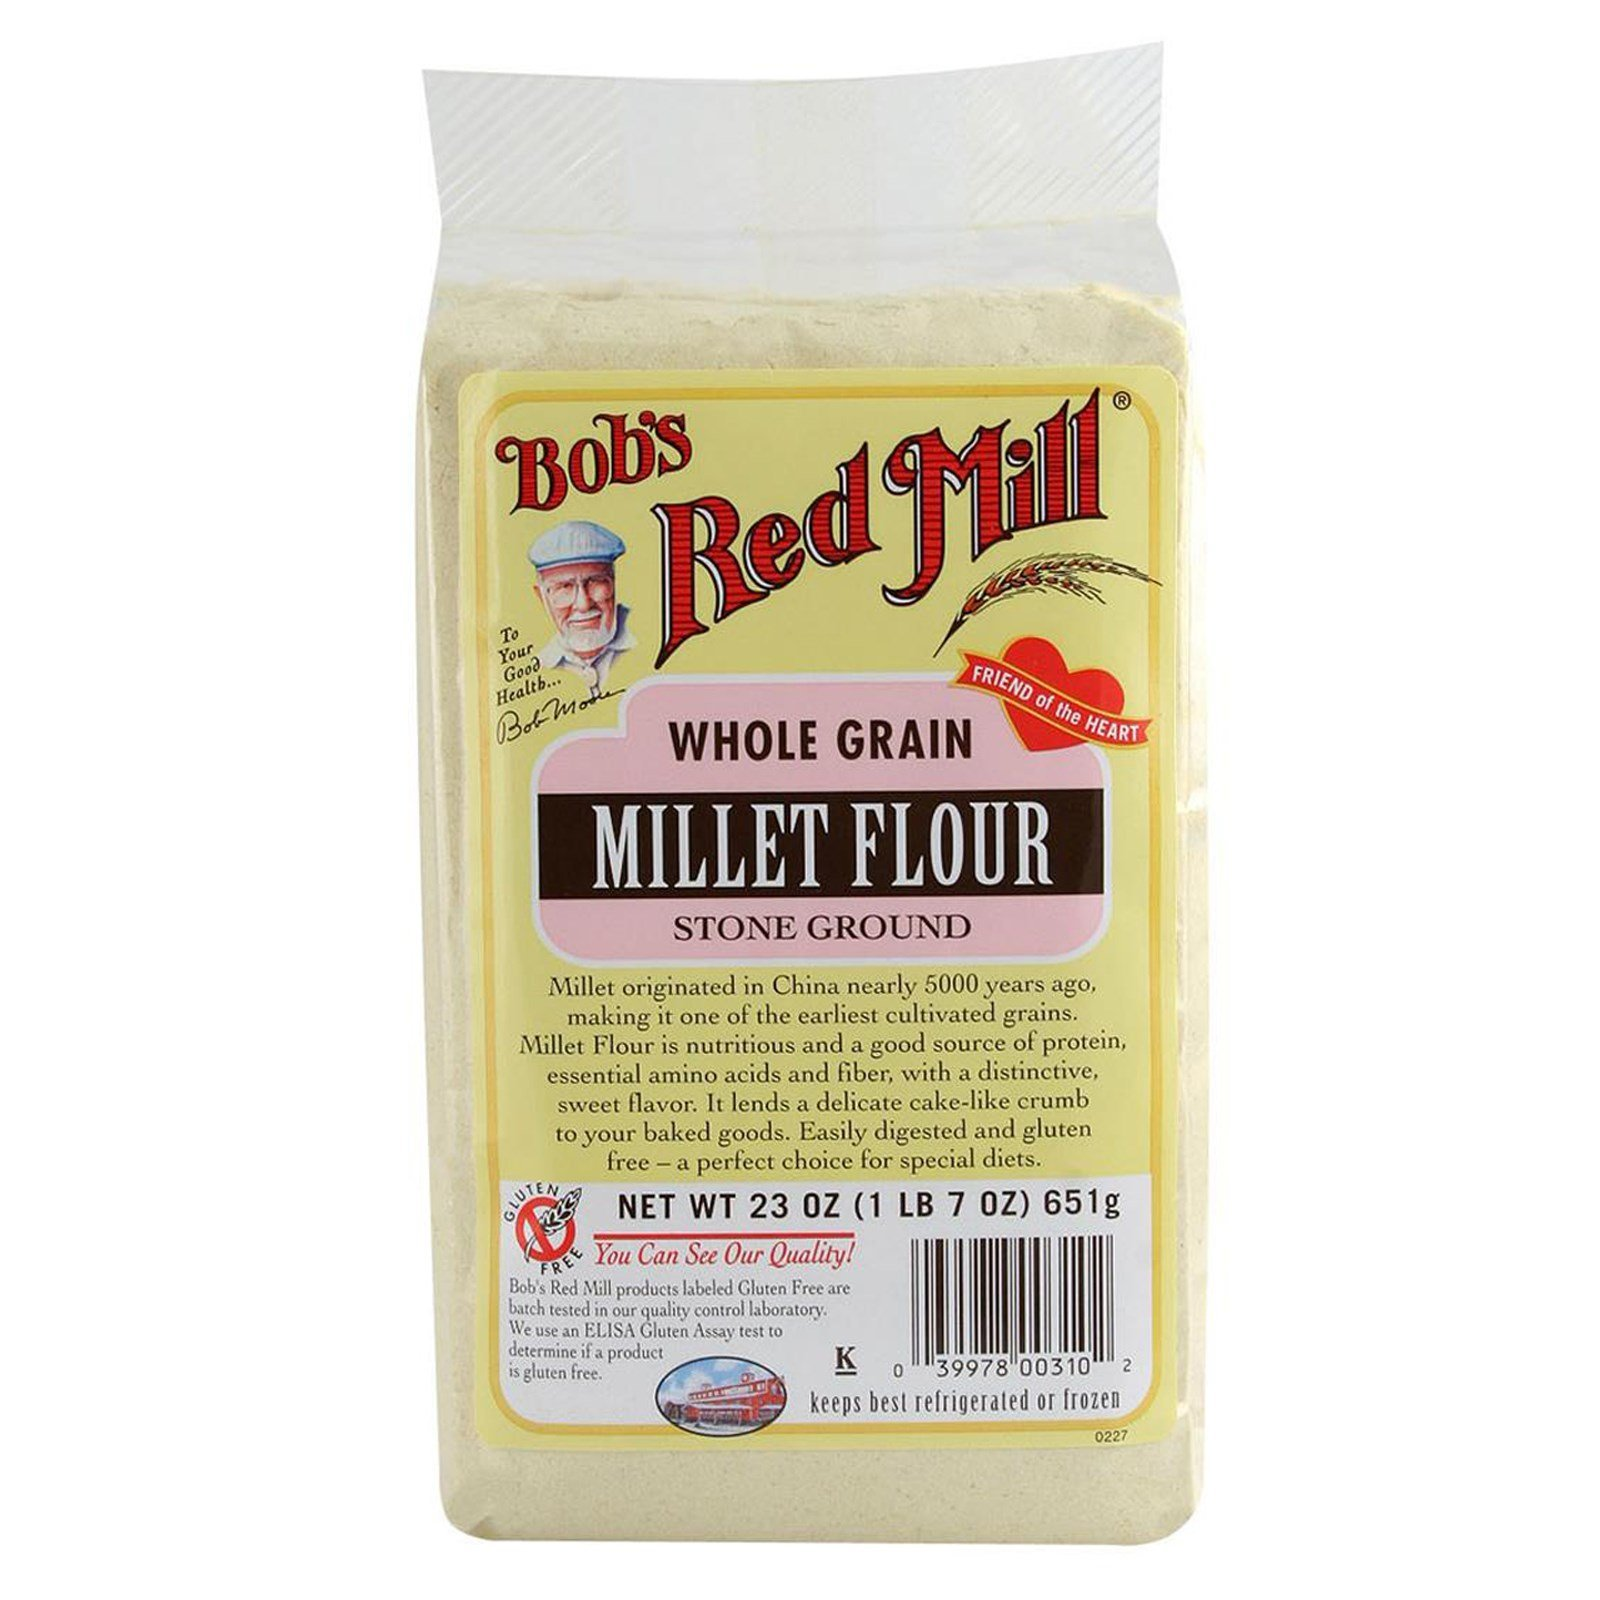 Bob's Red Mill, Whole Grain, Millet Flour, Stone Ground, 23 oz(Pack of 1)